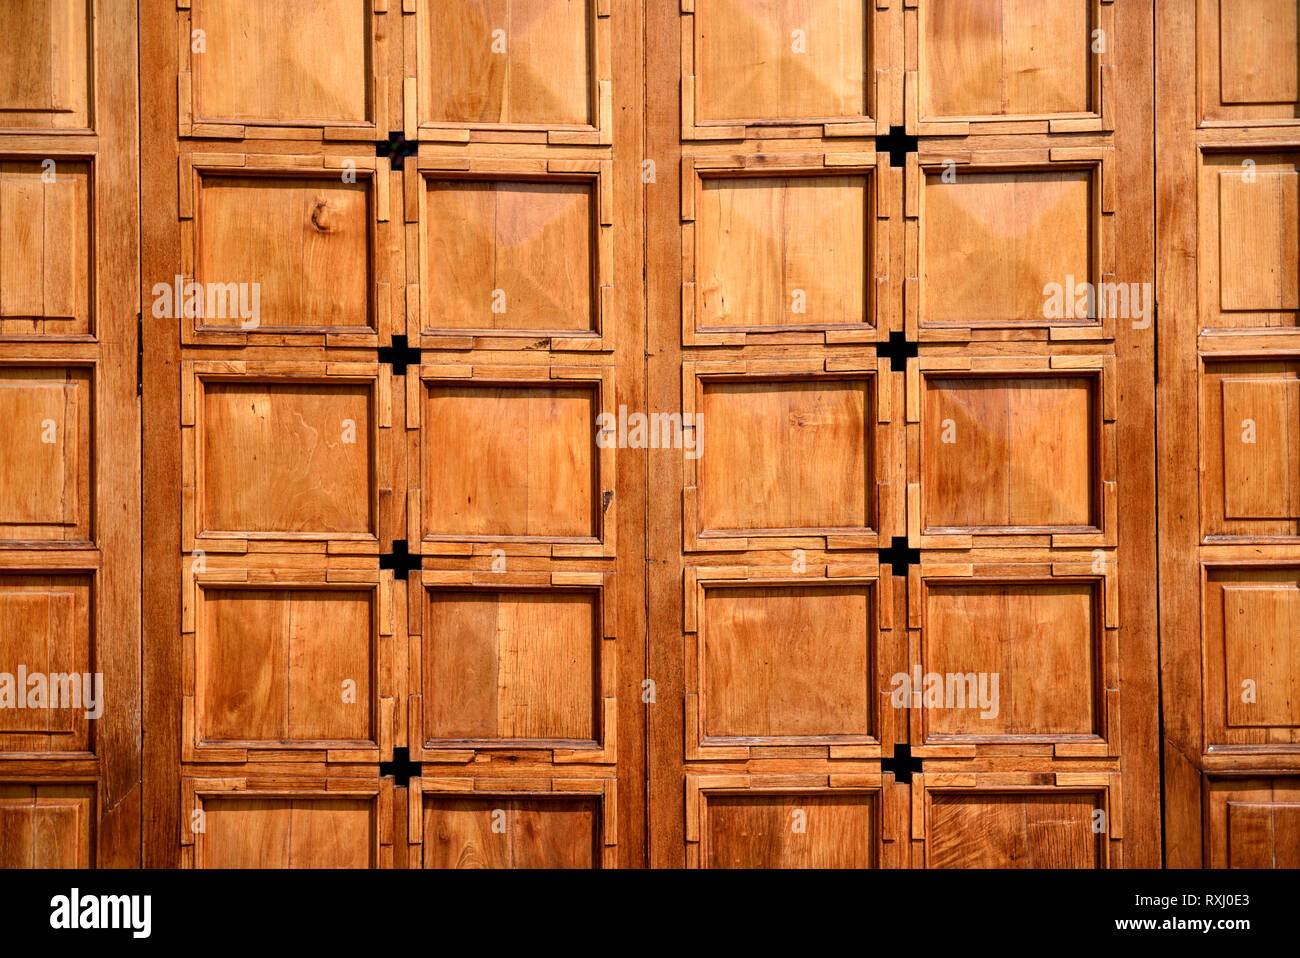 Sunlit wooden doors, square patterns with natural grains and textures. Stock Photo